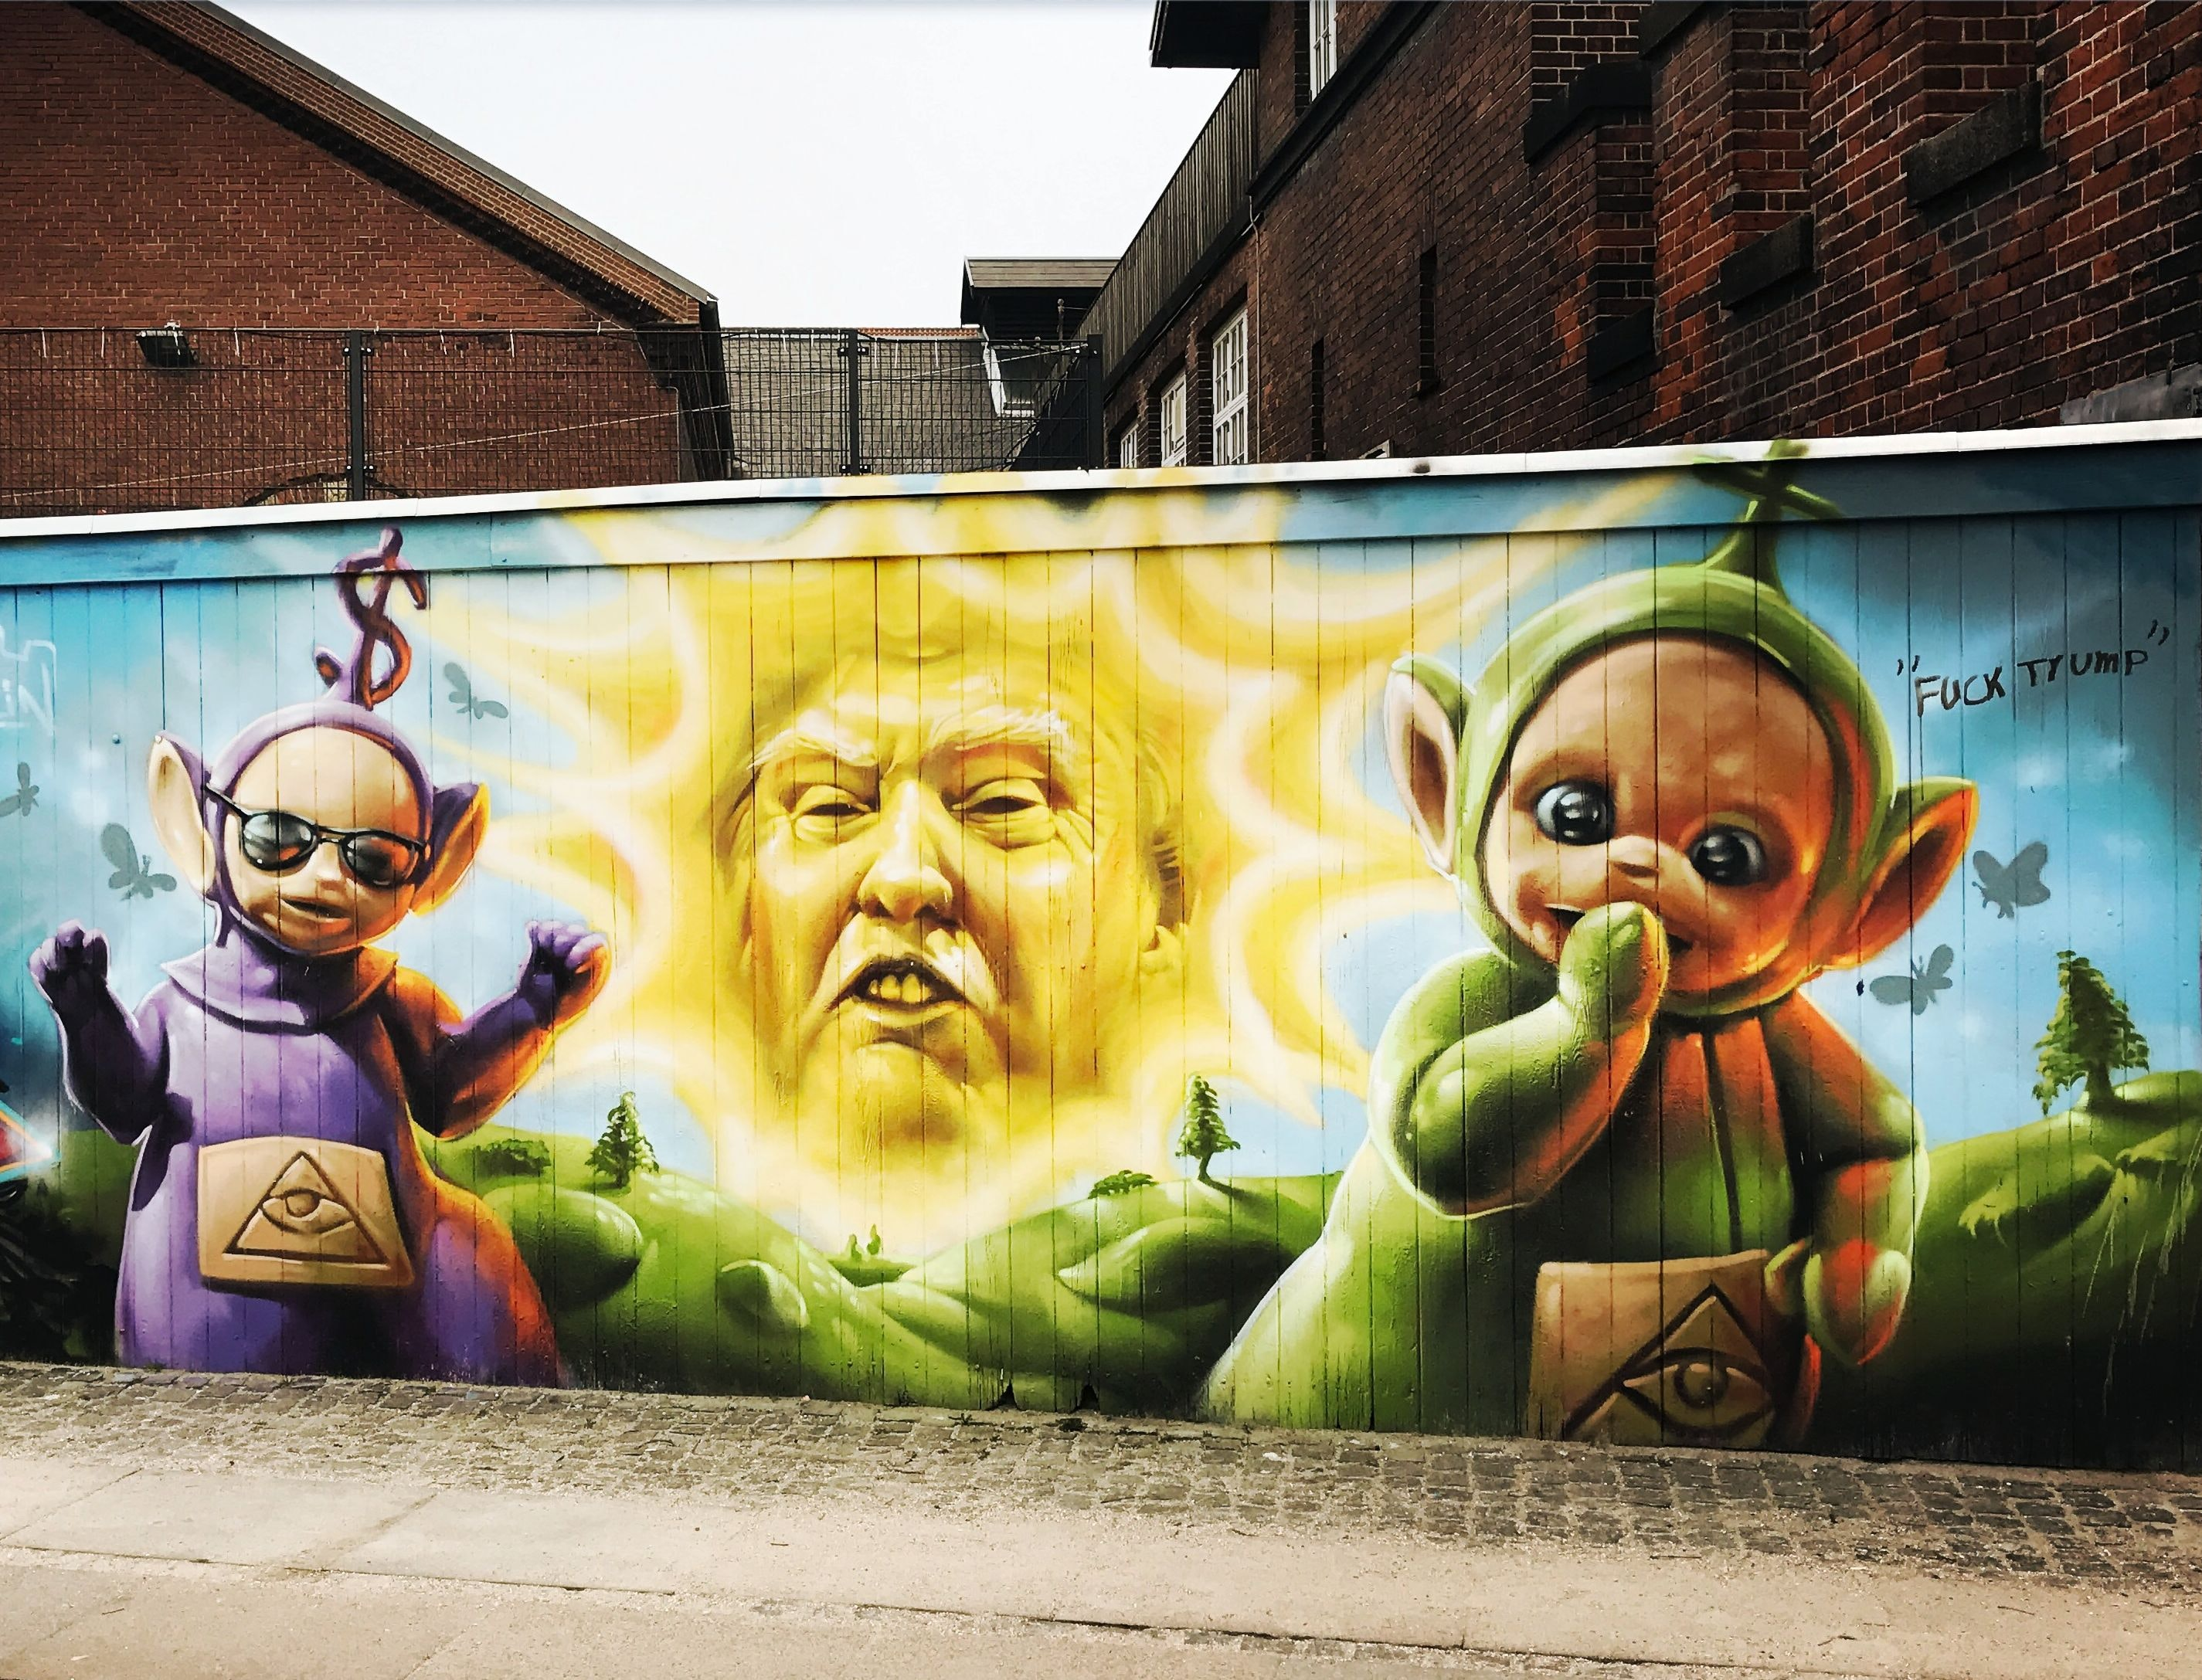 Funny graffiti of the Teletubbies.